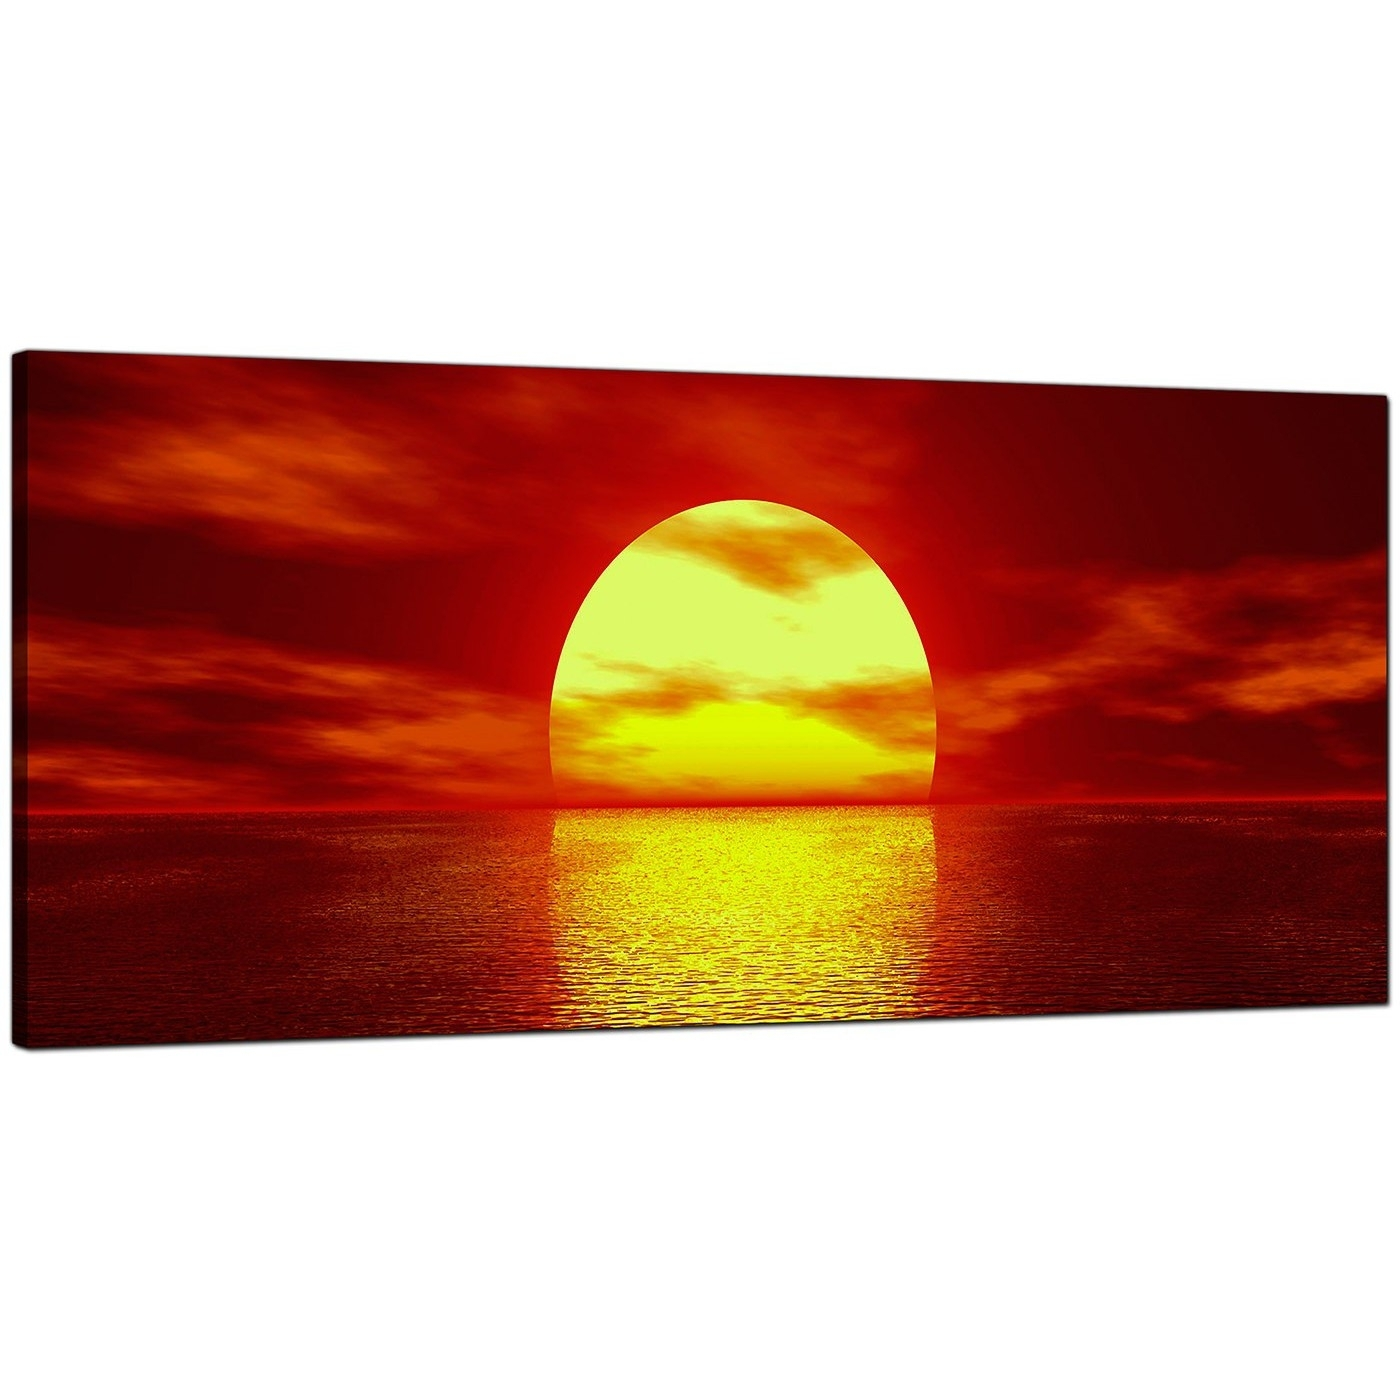 Modern Red Canvas Wall Art Of A Sea Sunset Within 2018 Canvas Wall Art In Red (View 13 of 15)